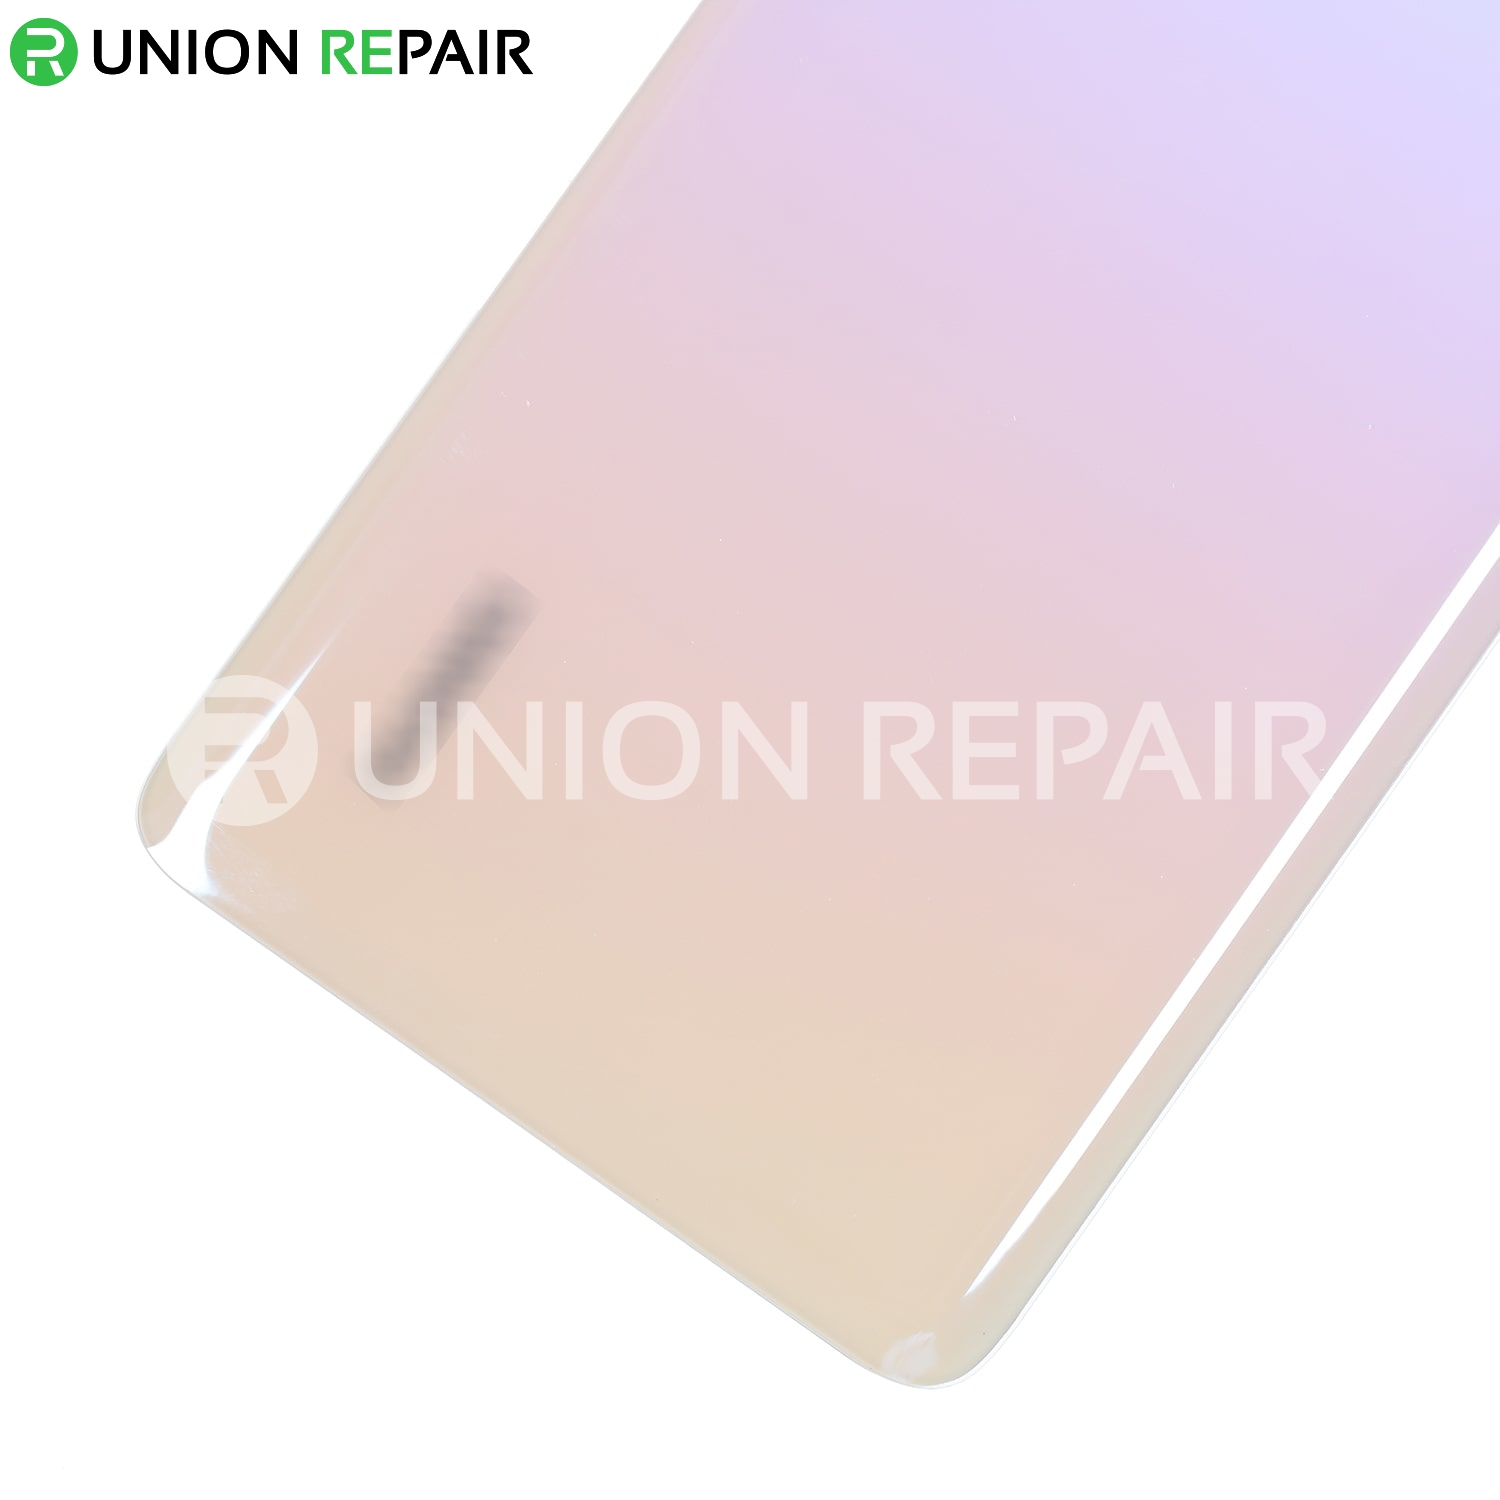 Replacement for Huawei P30 Pro Battery Door - Pearl White